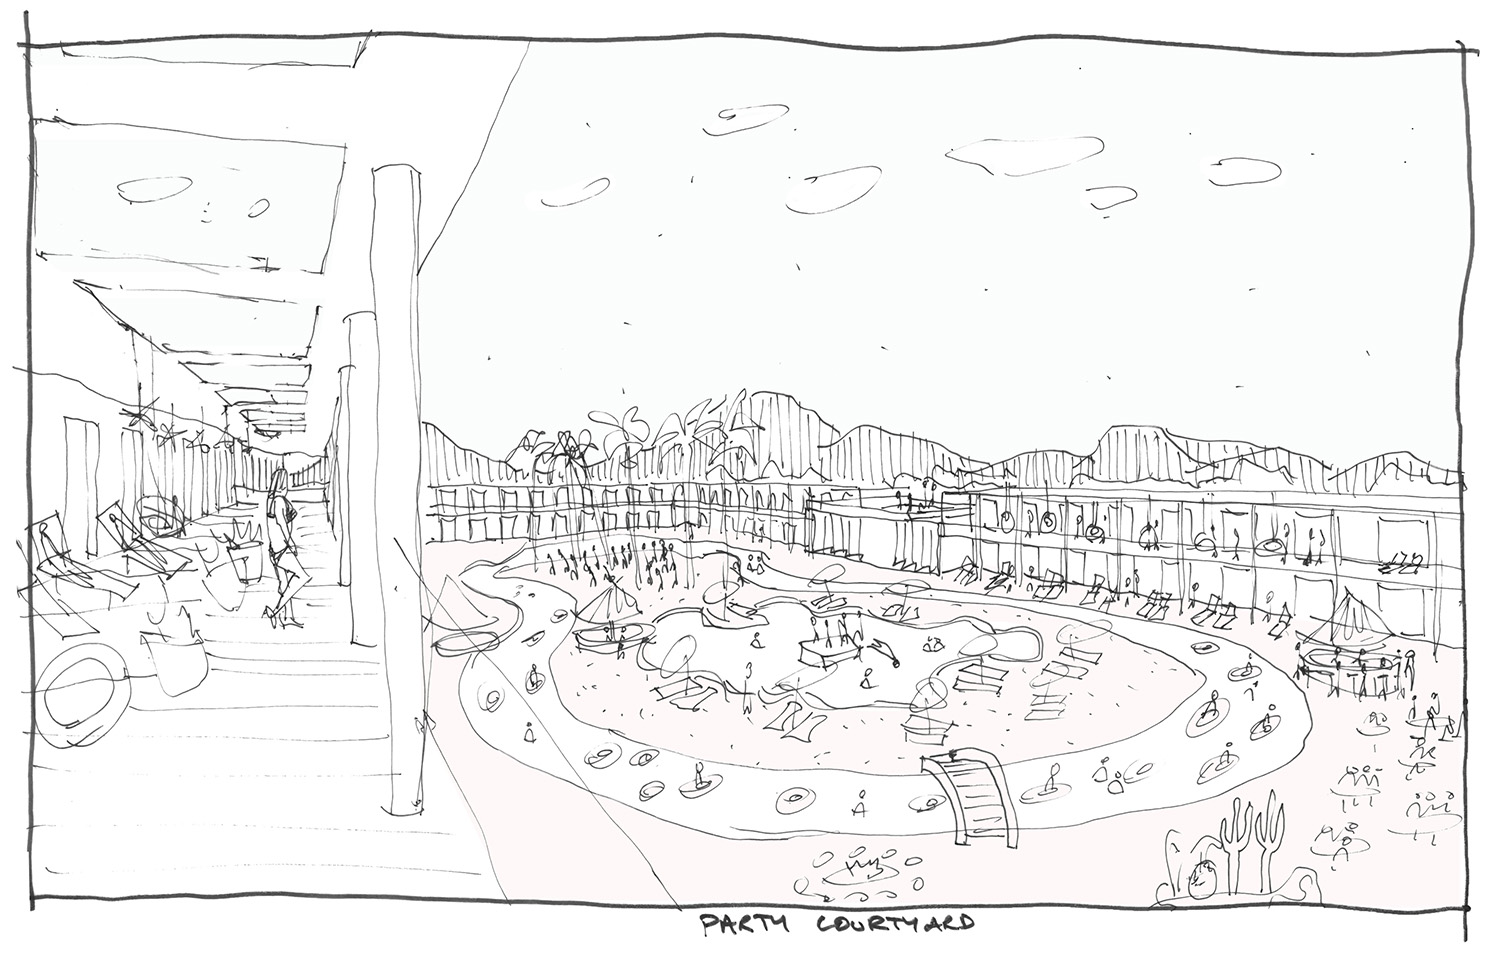 PARTI_10_LaQuinta_Drawing_Sketch_04.jpg